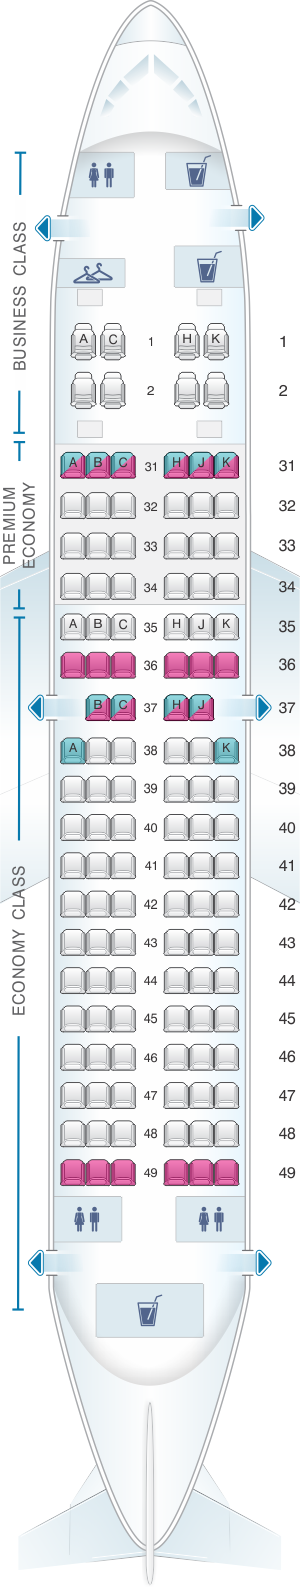 Seat map for China Southern Airlines Boeing B737 700